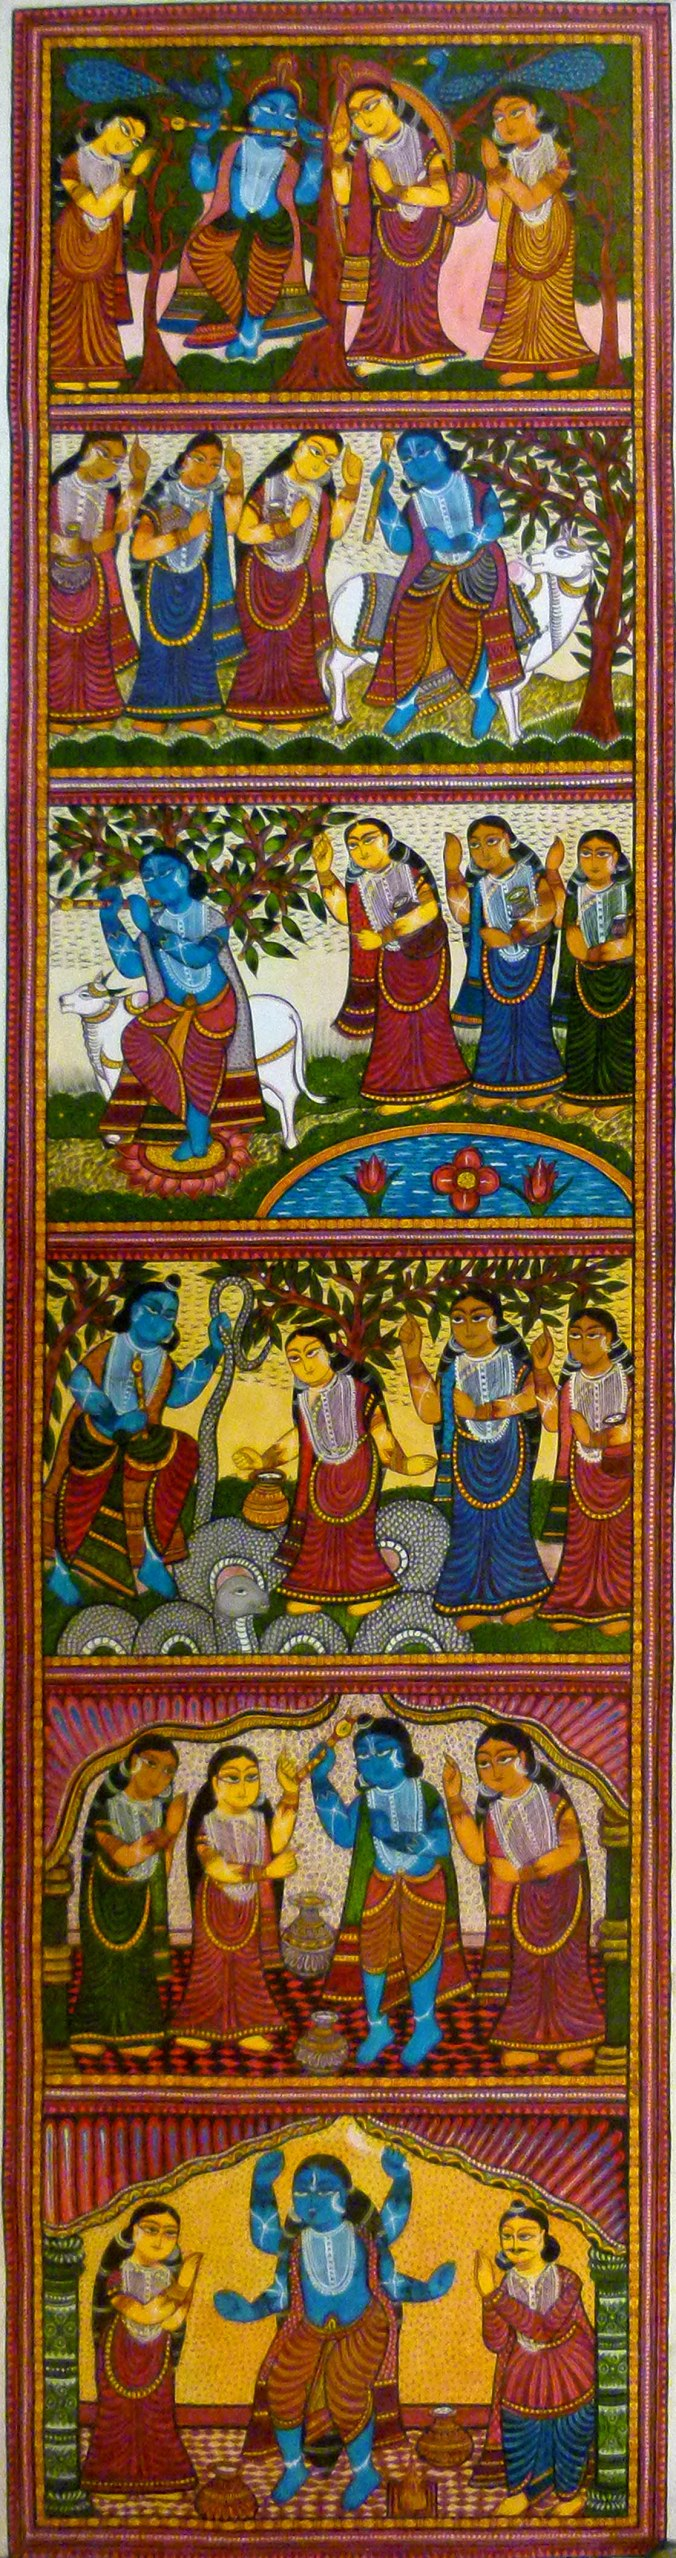 Bengal Scroll Painting